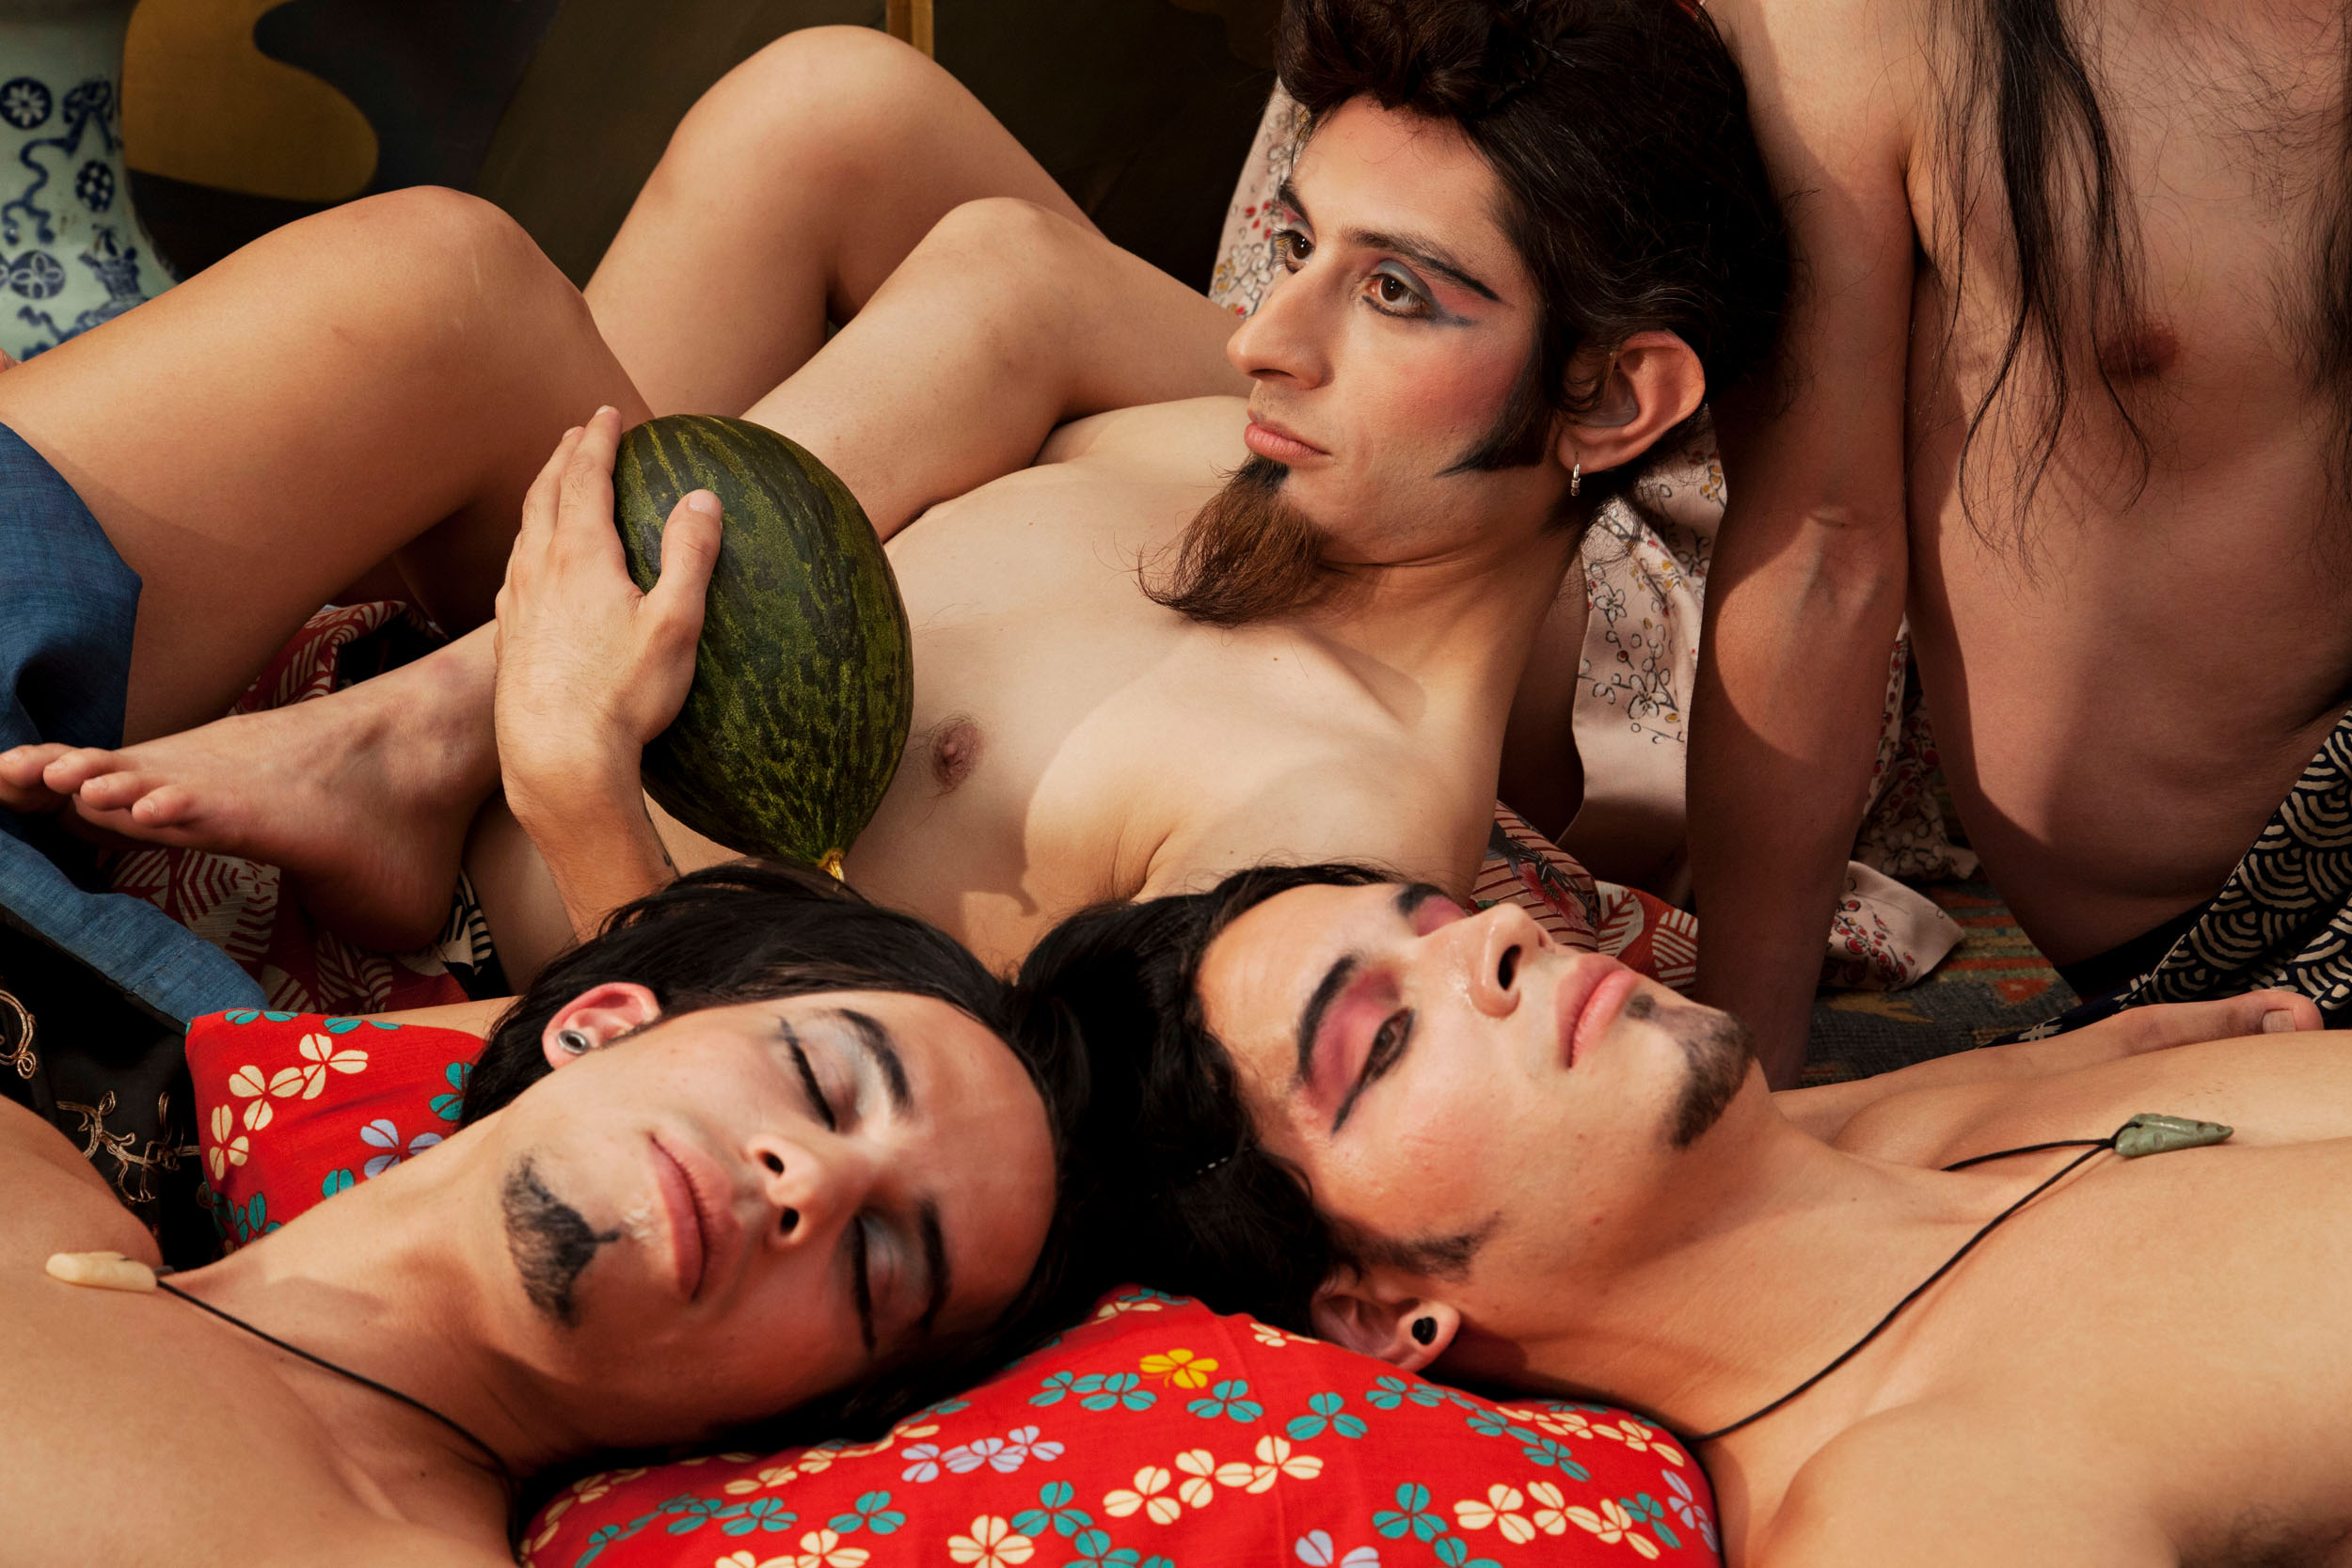 A Period of Rest (with Melon)   2012, archival pigment print. 94 x 141 cm / 37 x 55.5 in. Edition of 5 Produced with the assistance of the San Antonio Museum of Art